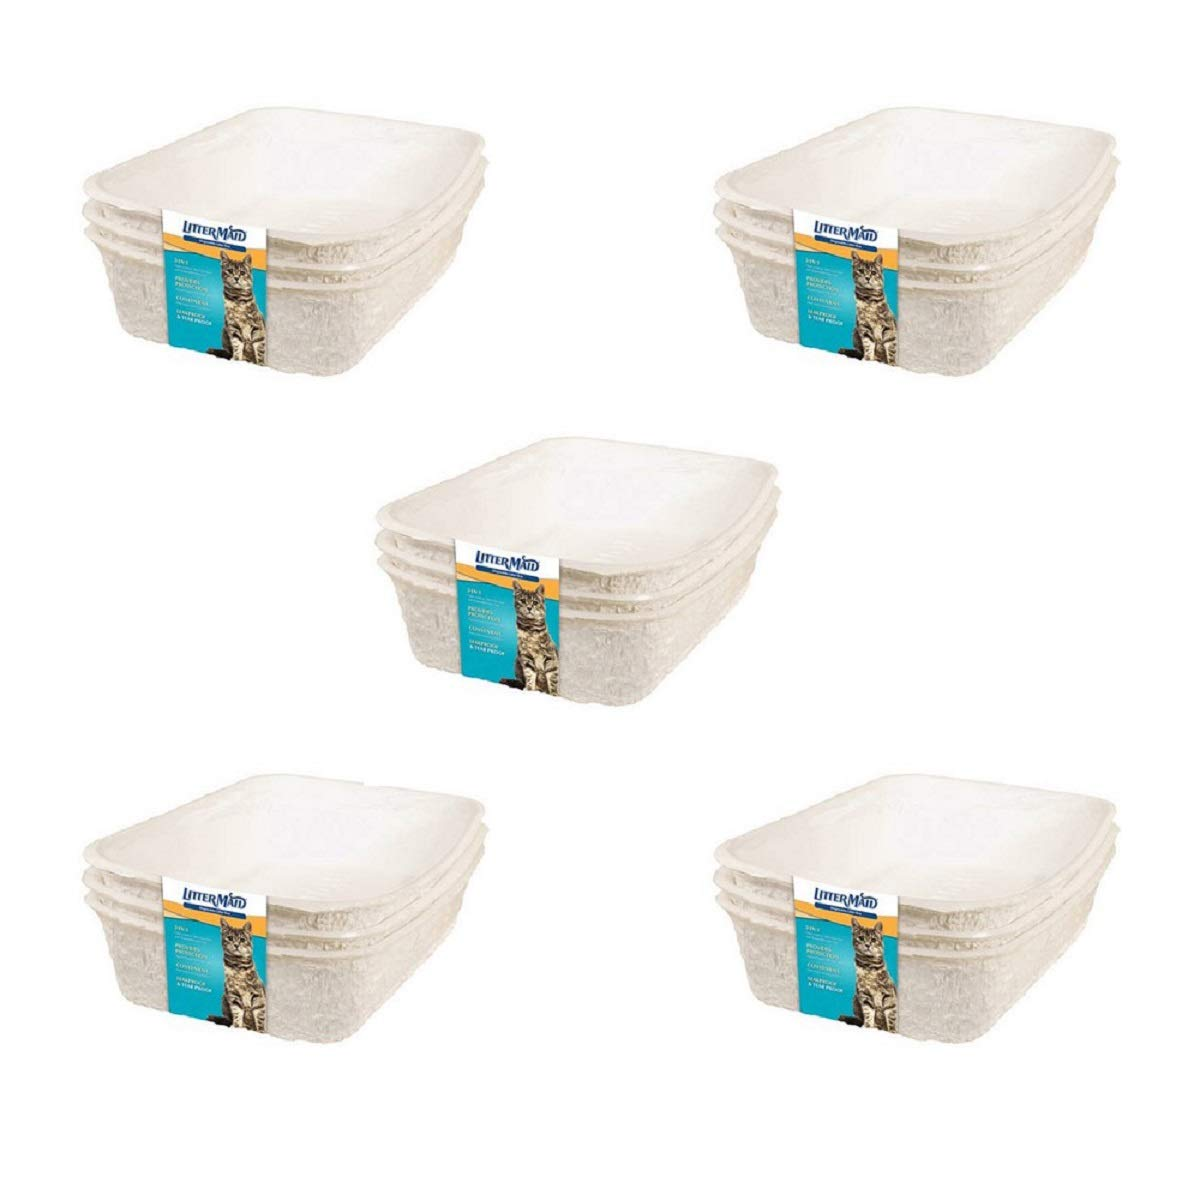 LitterMaid P-70000 Disposable Litter Box (3 Pack) (15 Pieces) by LitterMaid